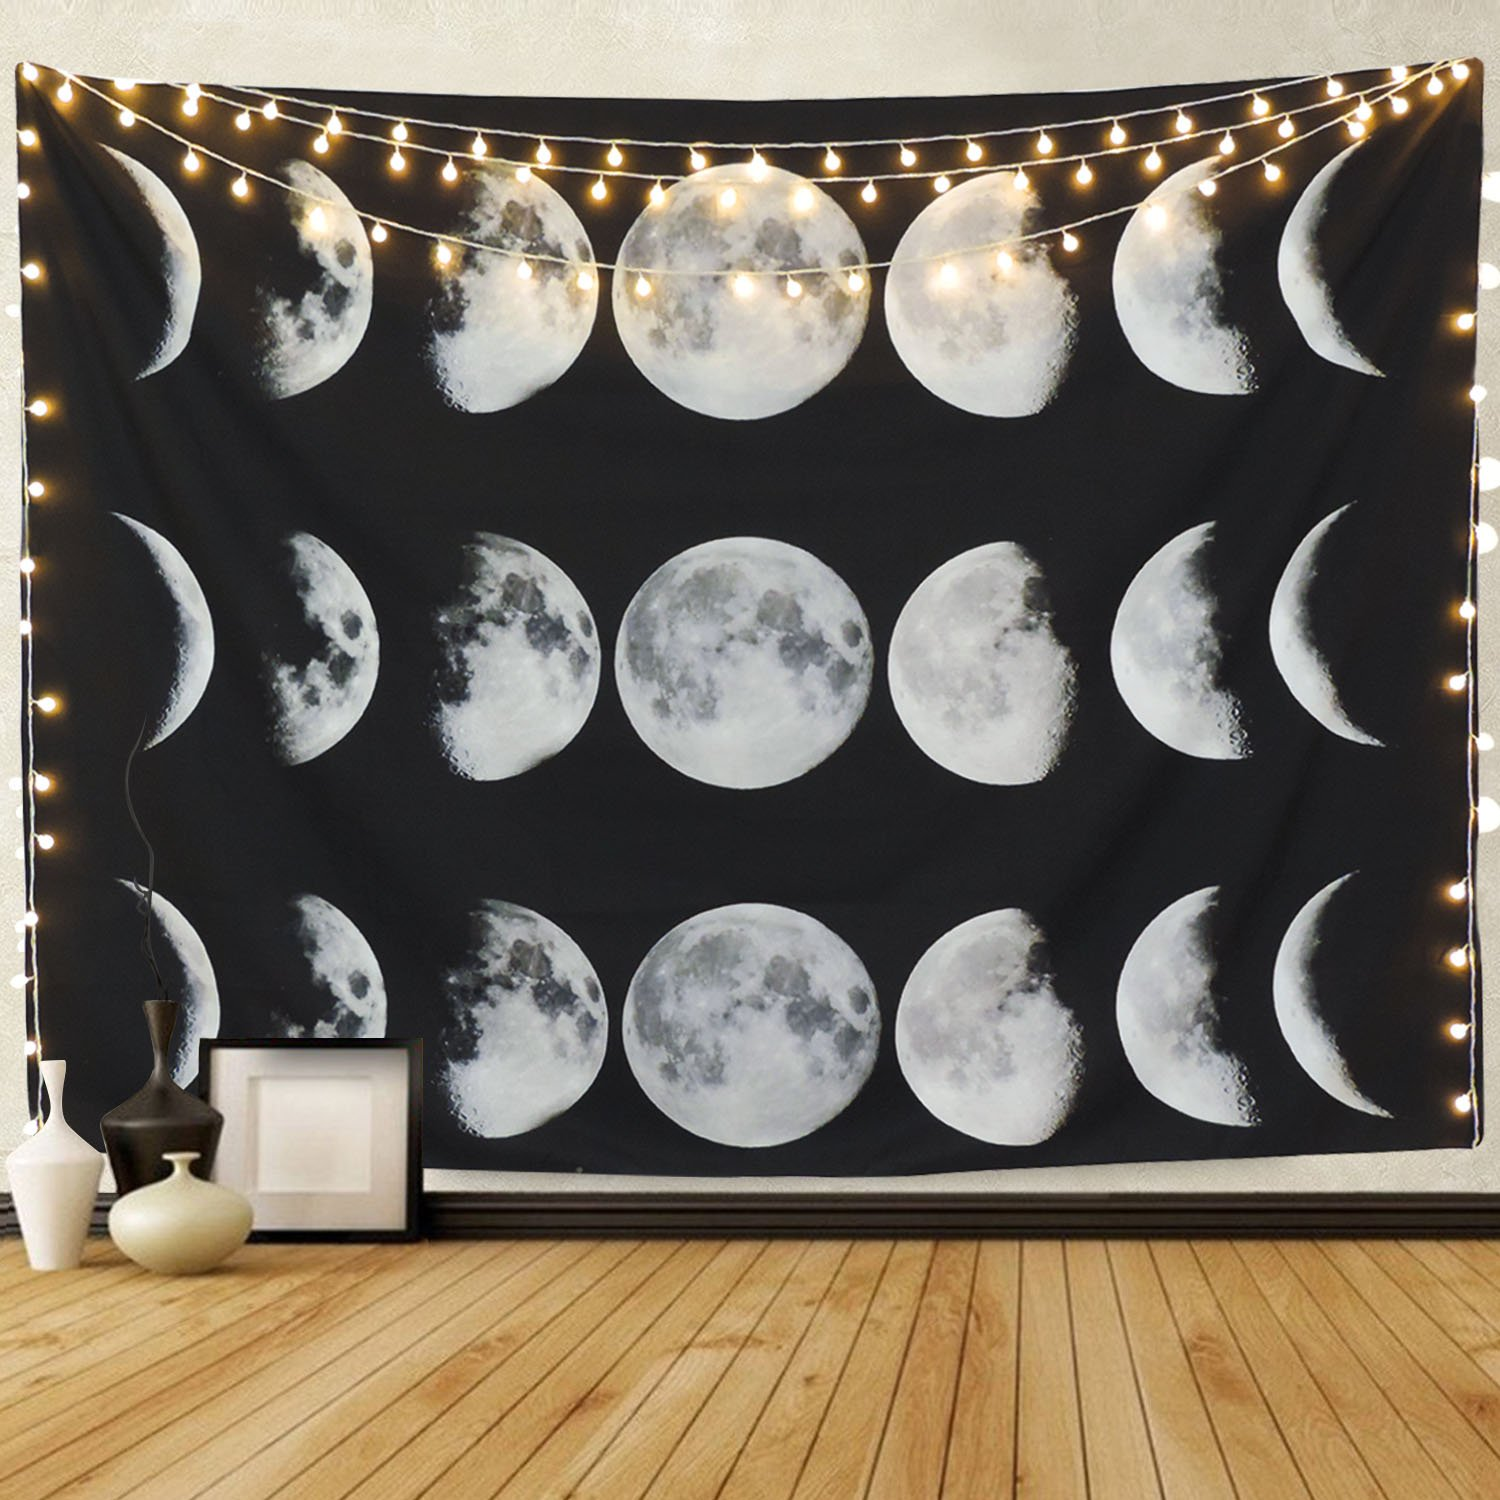 Martine Mall Tapestry Moon Phase Change Tapestry Wall Tapestry Wall Hanging Tapestries Moon Constellations Tapestry Indian Wall Decor (Moon Phase Change, 51.2'' x 59.1'') by Martine Mall